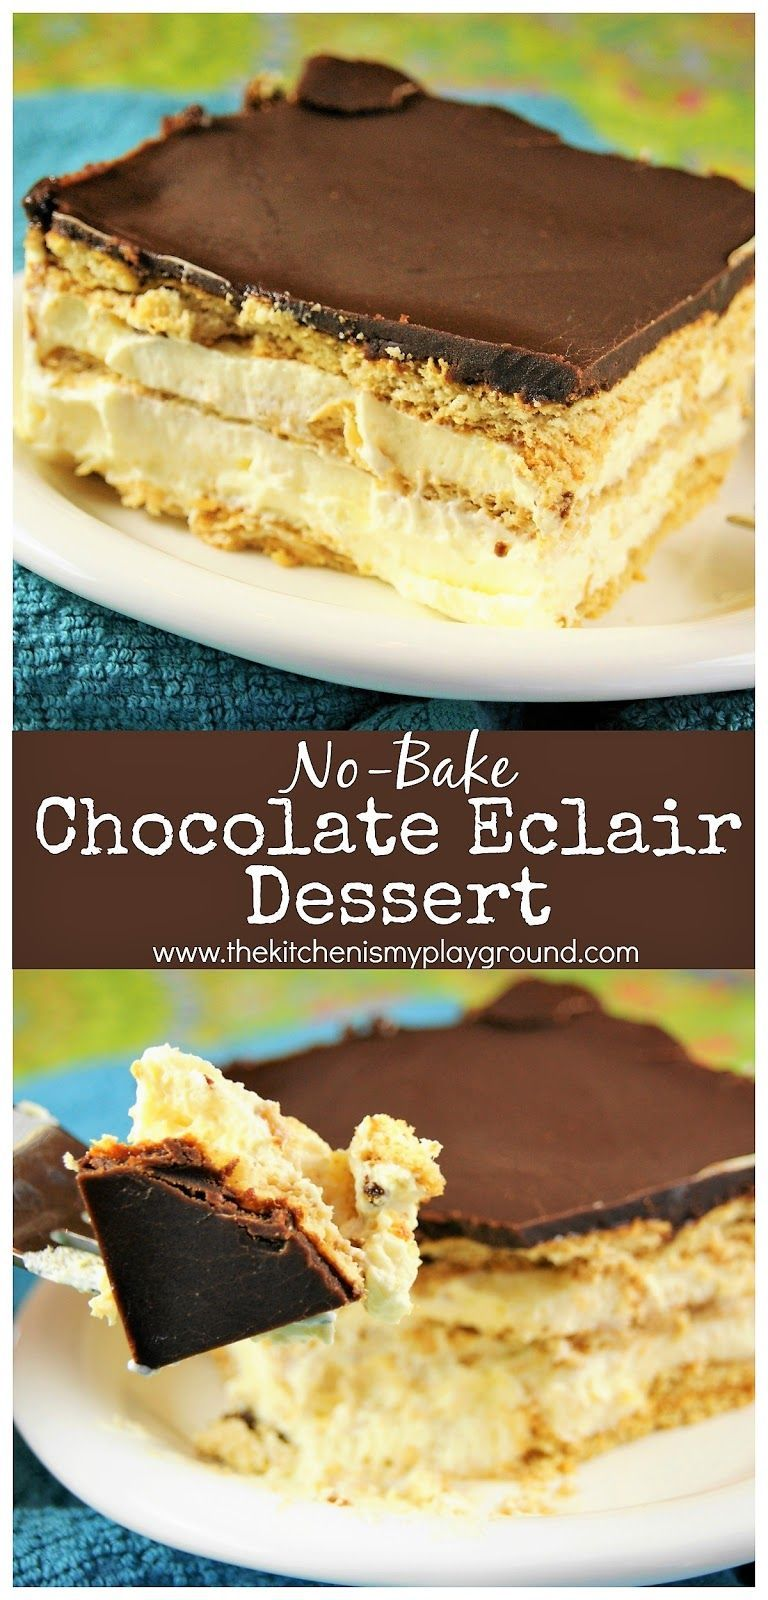 No-Bake Chocolate Eclair Dessert images